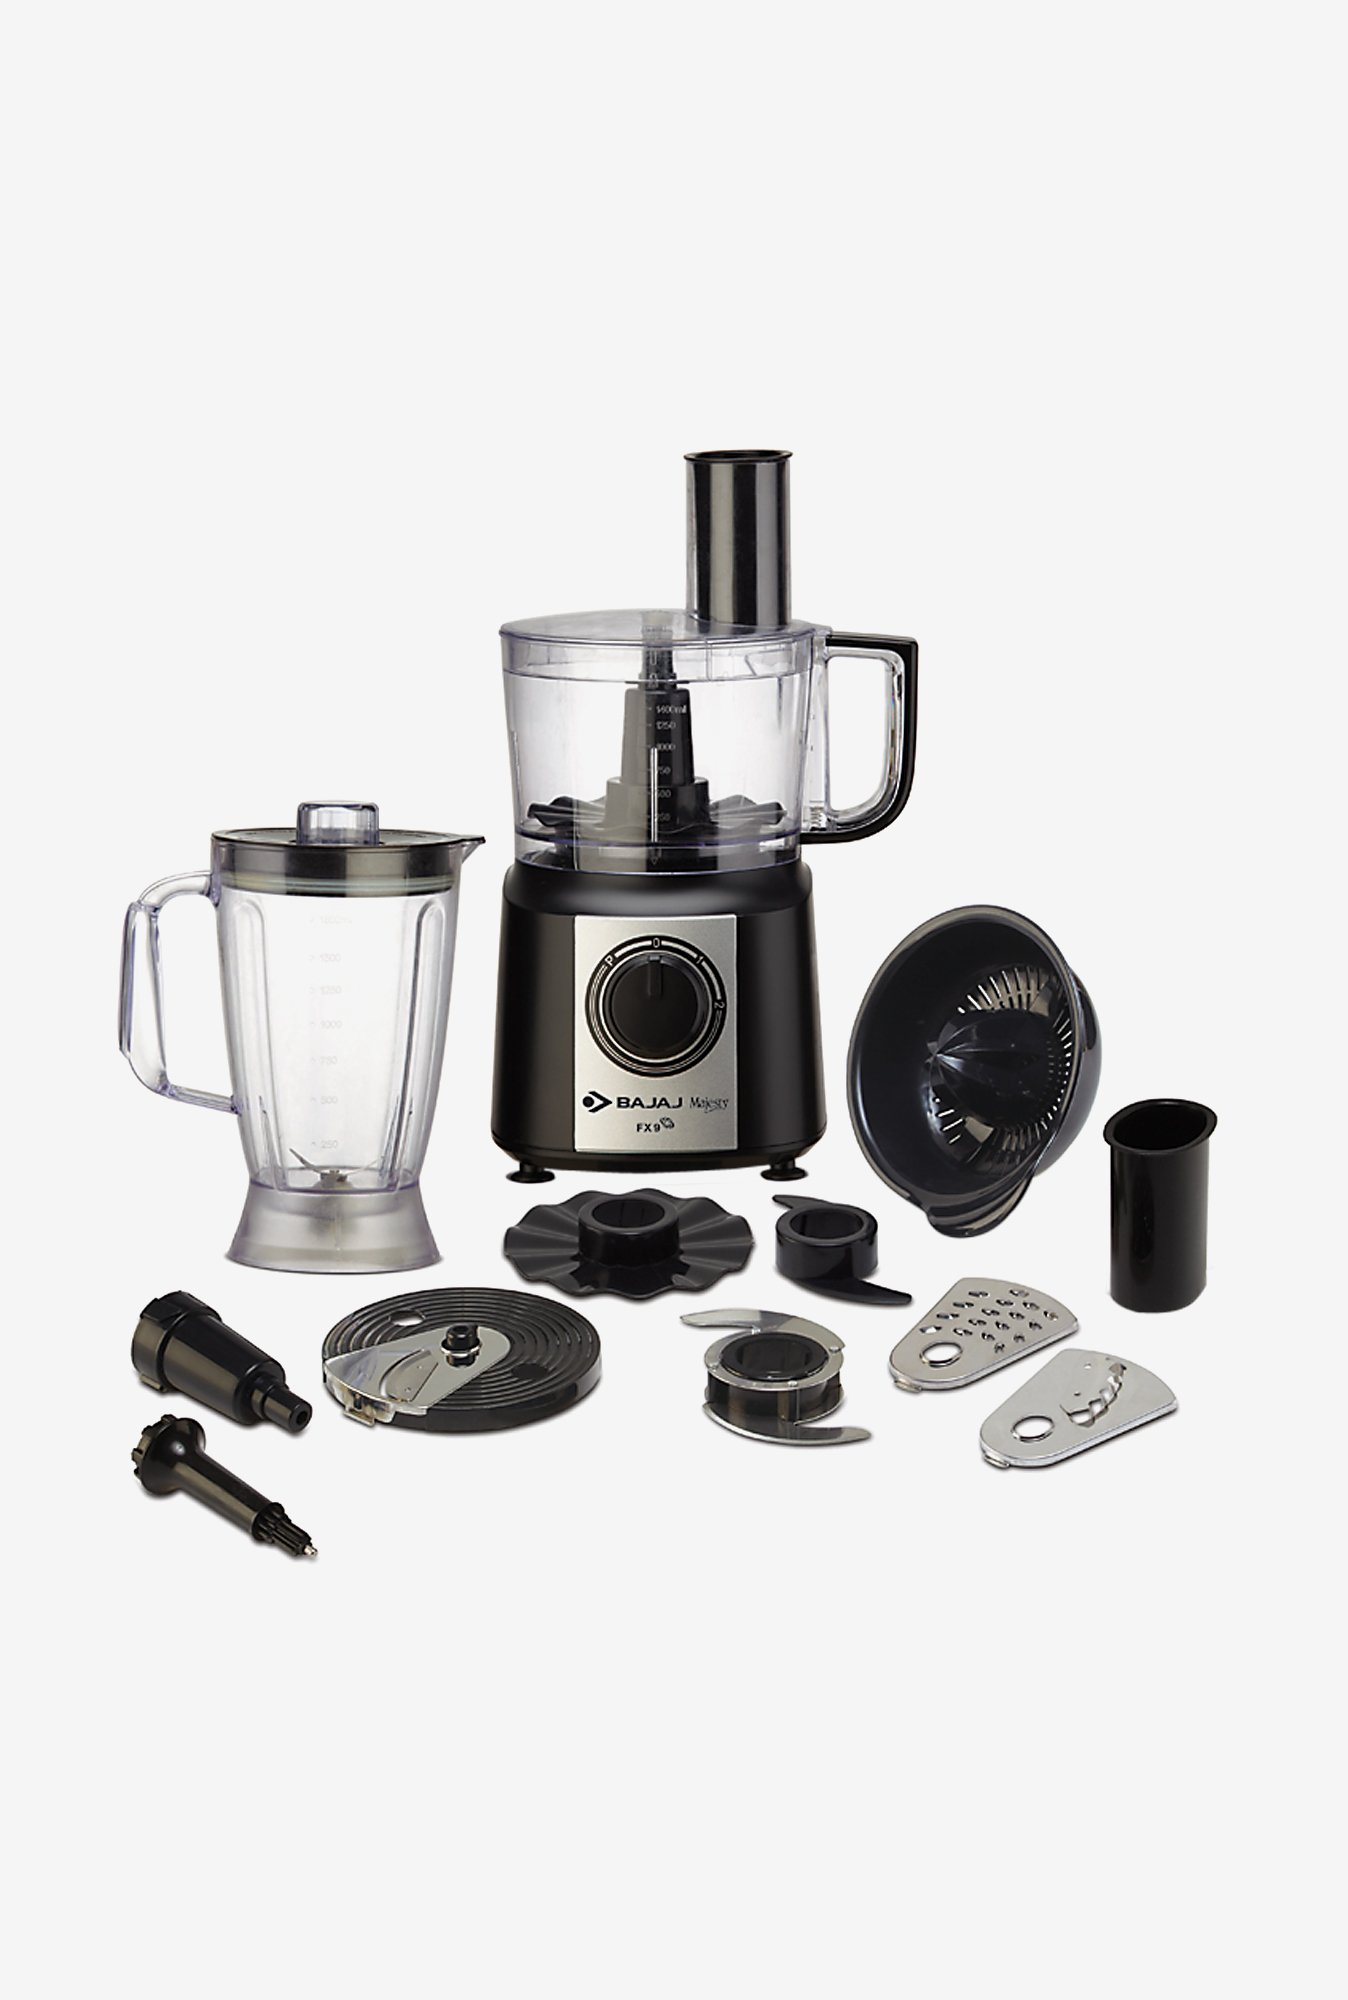 Bajaj Majesty FX9 Mini Food Processor (Black)